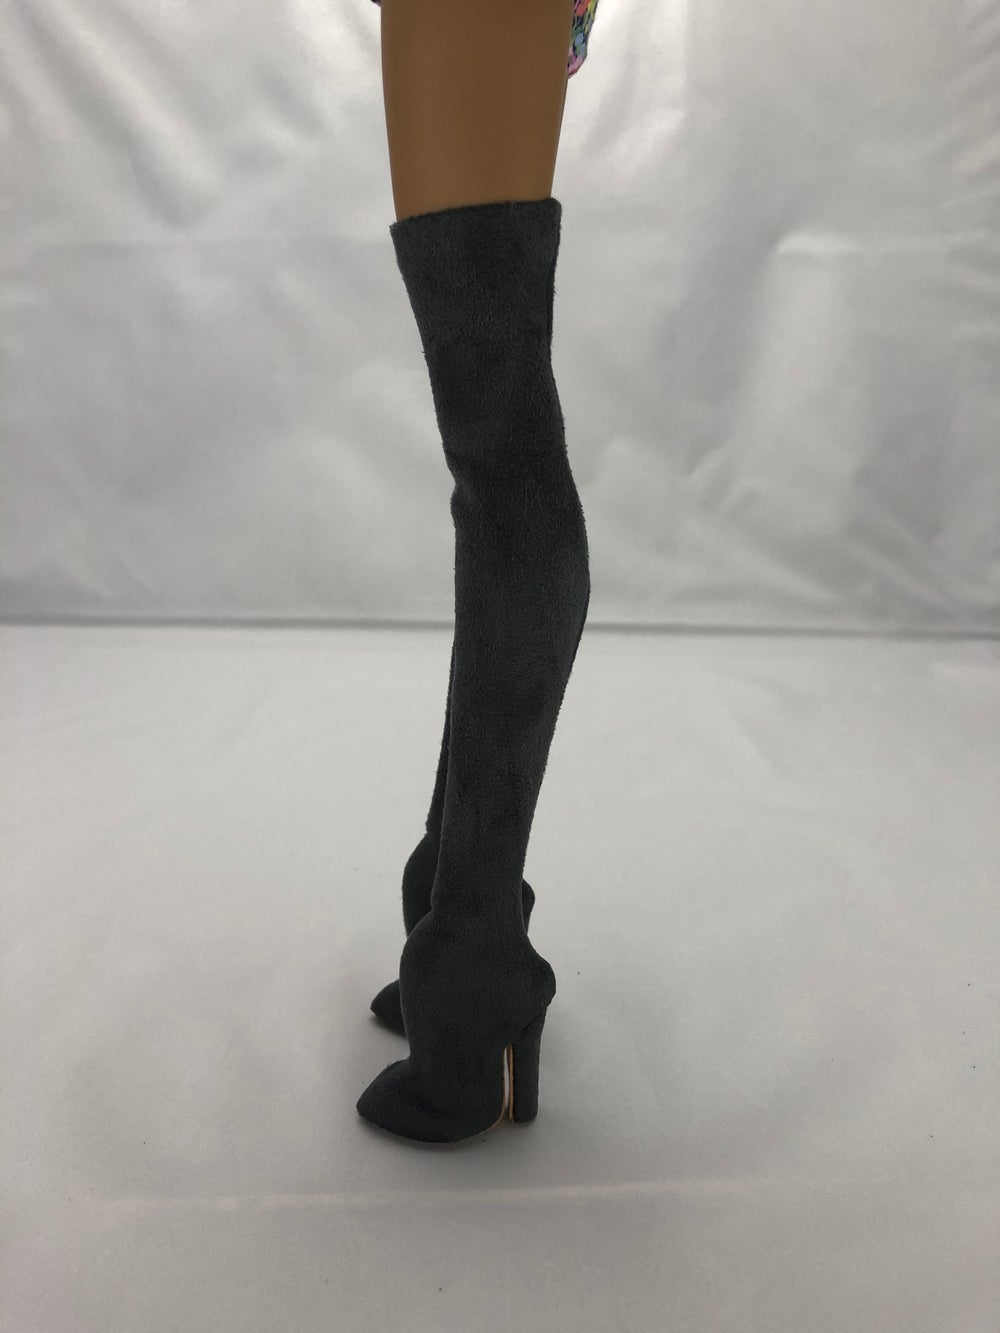 Gray Suede Thigh High Boots: Pidgin Doll  P1